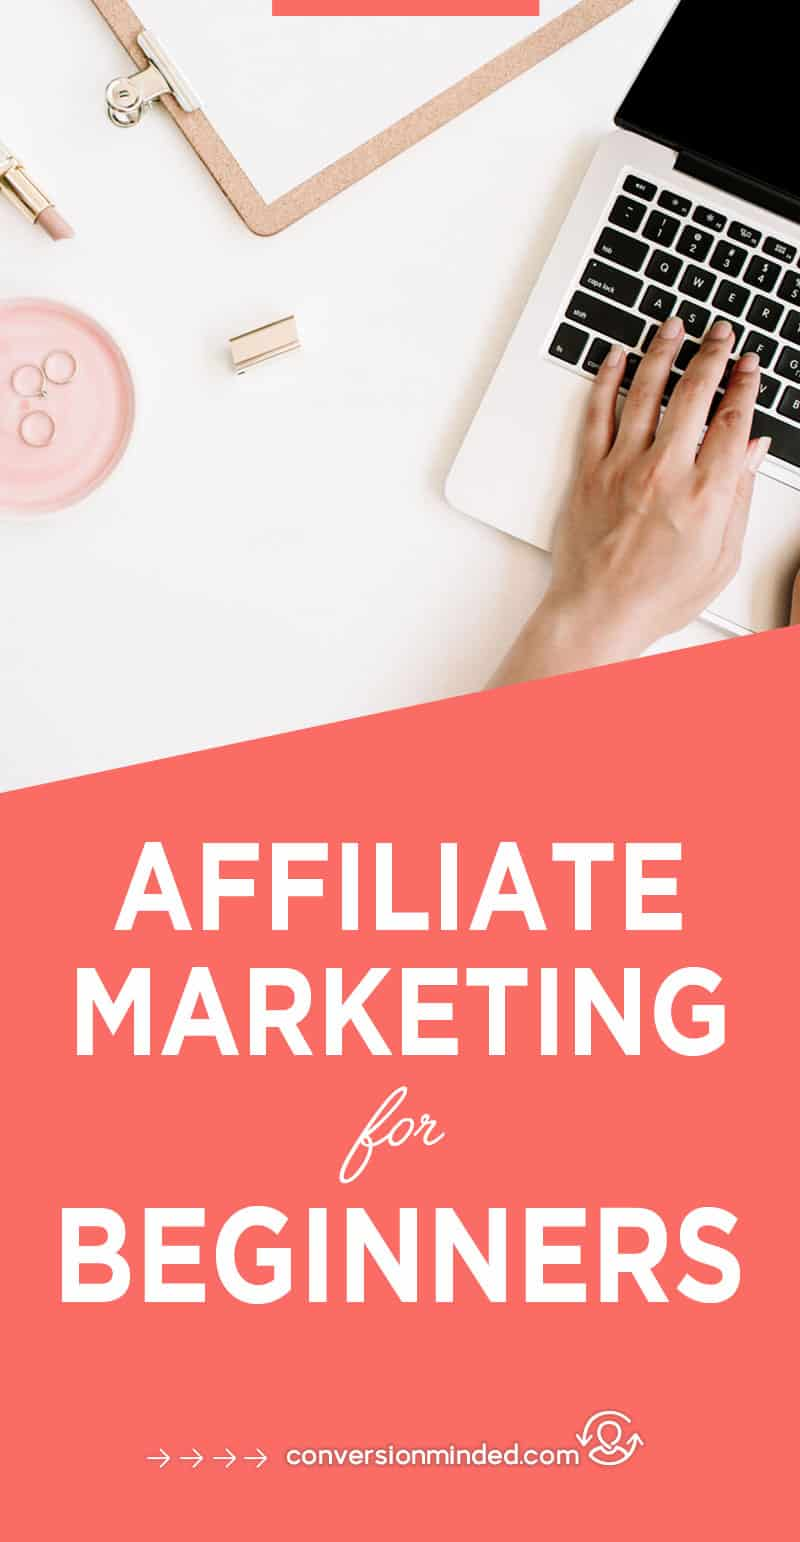 Affiliate Marketing for Beginners | Have you been wanting to try affiliate marketing for bloggers, but wonder if it's just too hard or maybe even a waste of time? This post is for you! I'm sharing everything I've learned from the Making Sense of Affiliate Marketing Course to help entrepreneurs and bloggers get started with affiliate marketing! Click through to see all the affiliate marketing tips! #affiliatemarketing